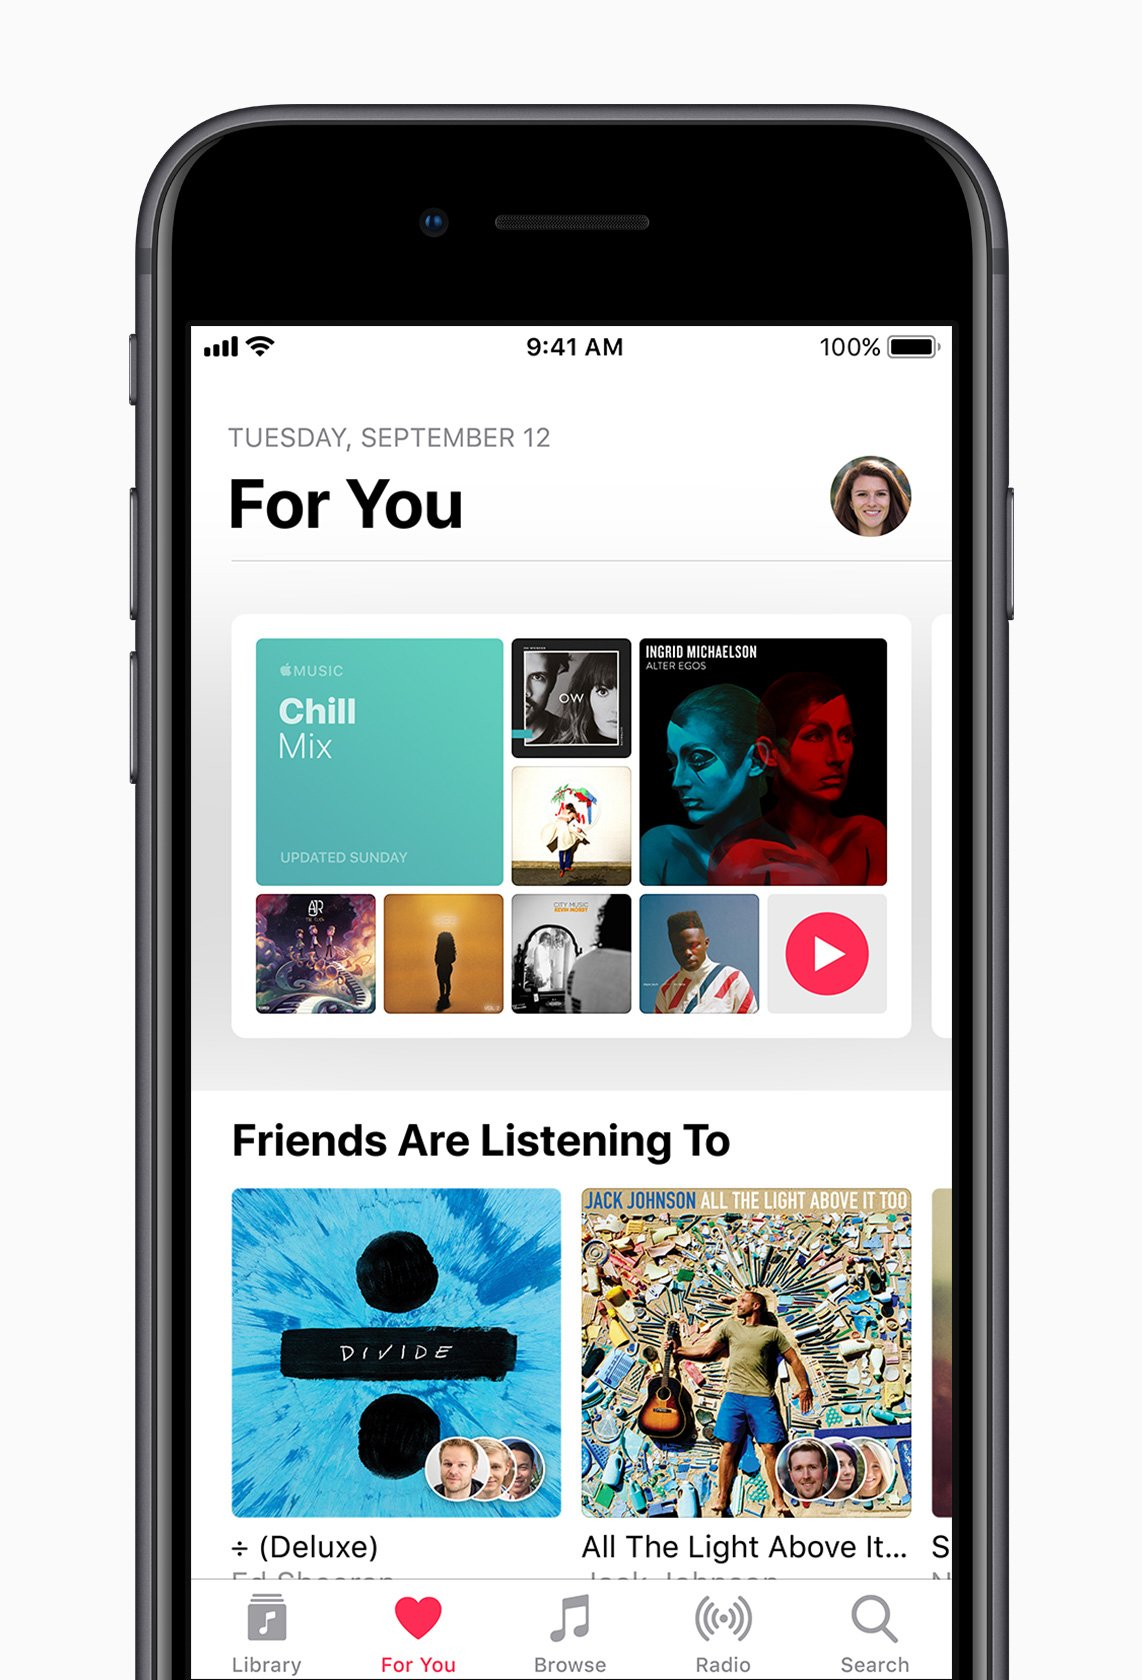 12. You can share Apple Music playlists with your friends.